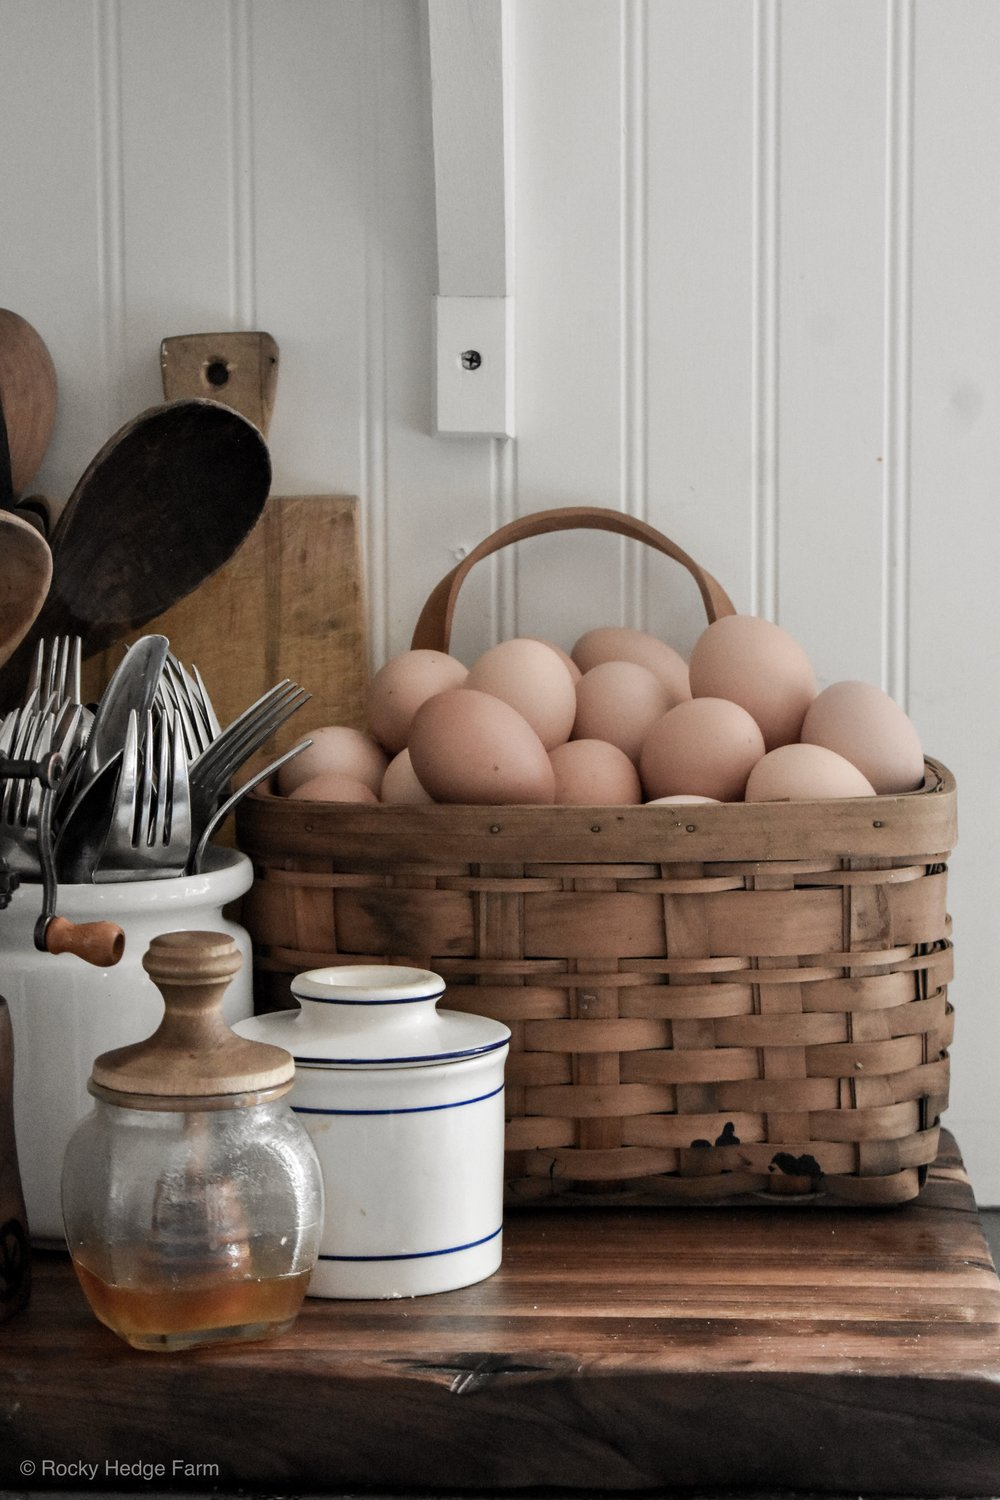 Tips on How to Keep a Tidy and Clean Kitchen Everyday | Rocky Hedge Farm